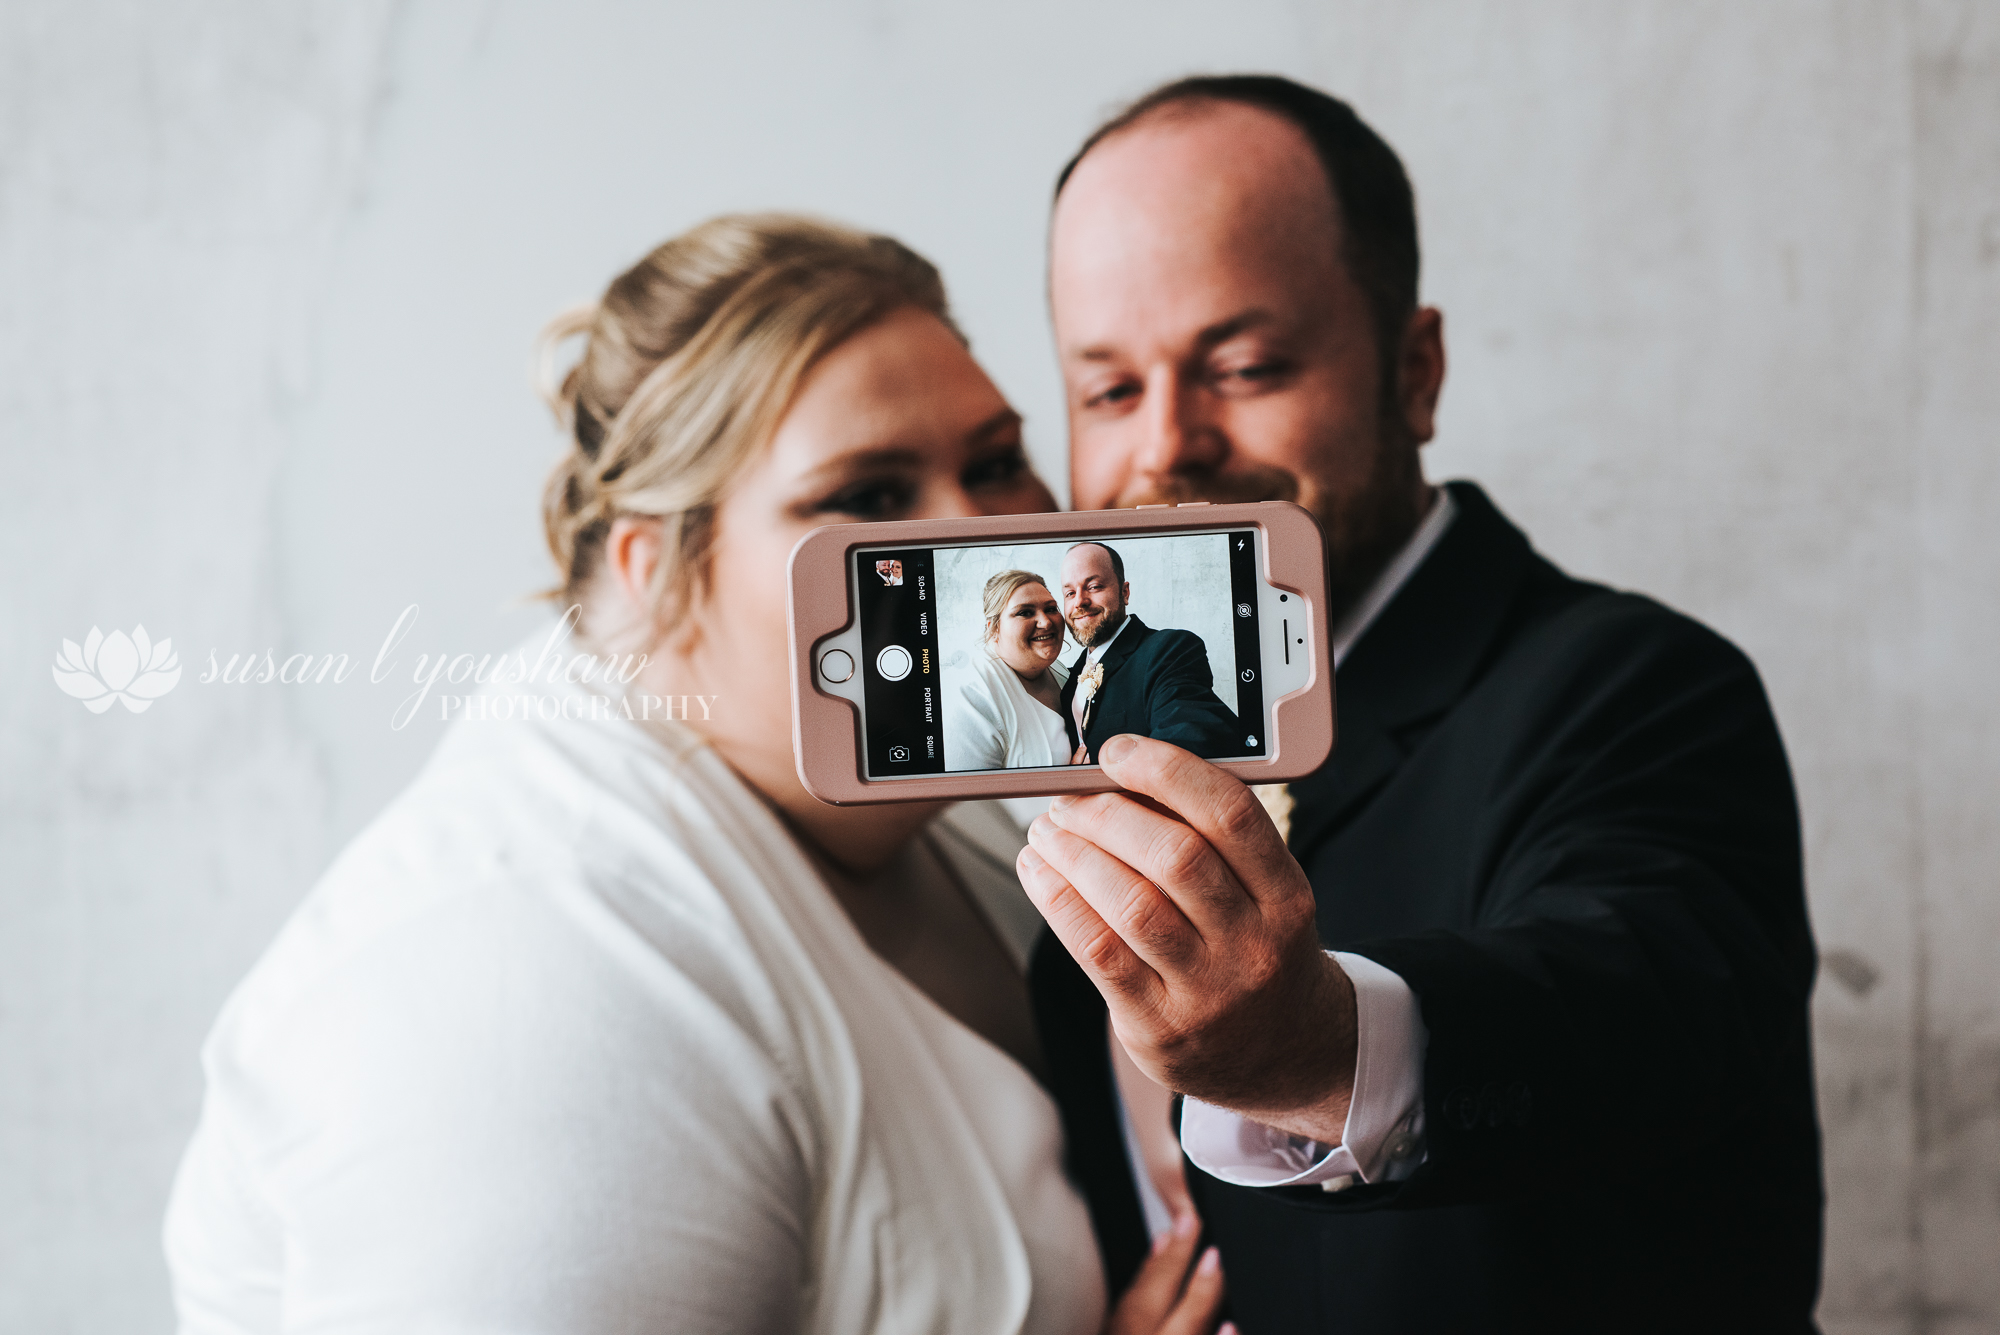 Bill and Sarah Wedding Photos 06-08-2019 SLY Photography -23.jpg